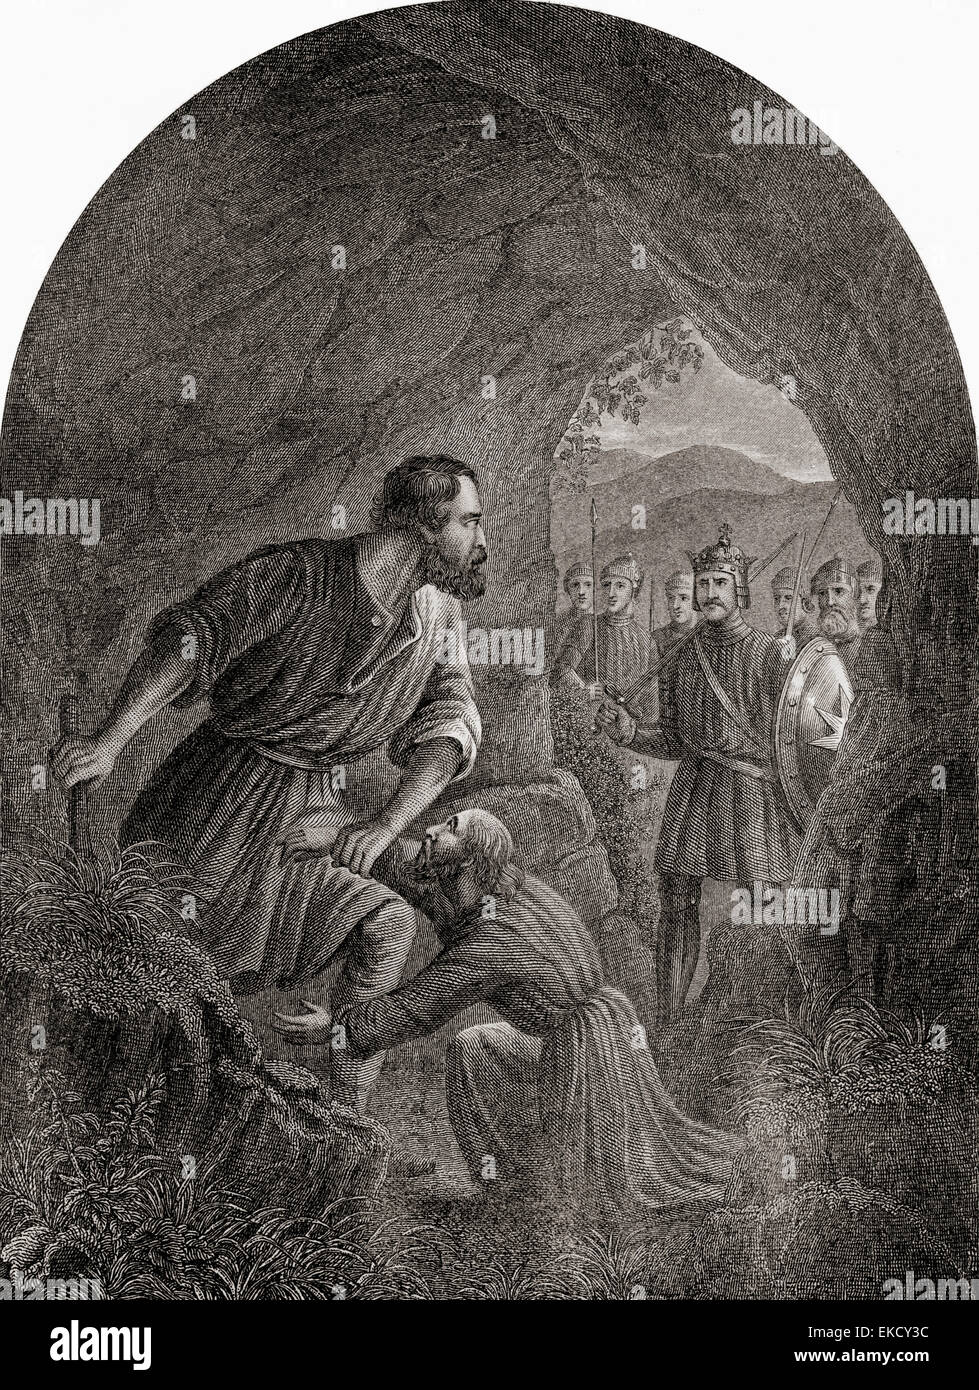 Giant Grim and Feeble-Mind.  From The Pilgrim's Progress by John Bunyan. - Stock Image